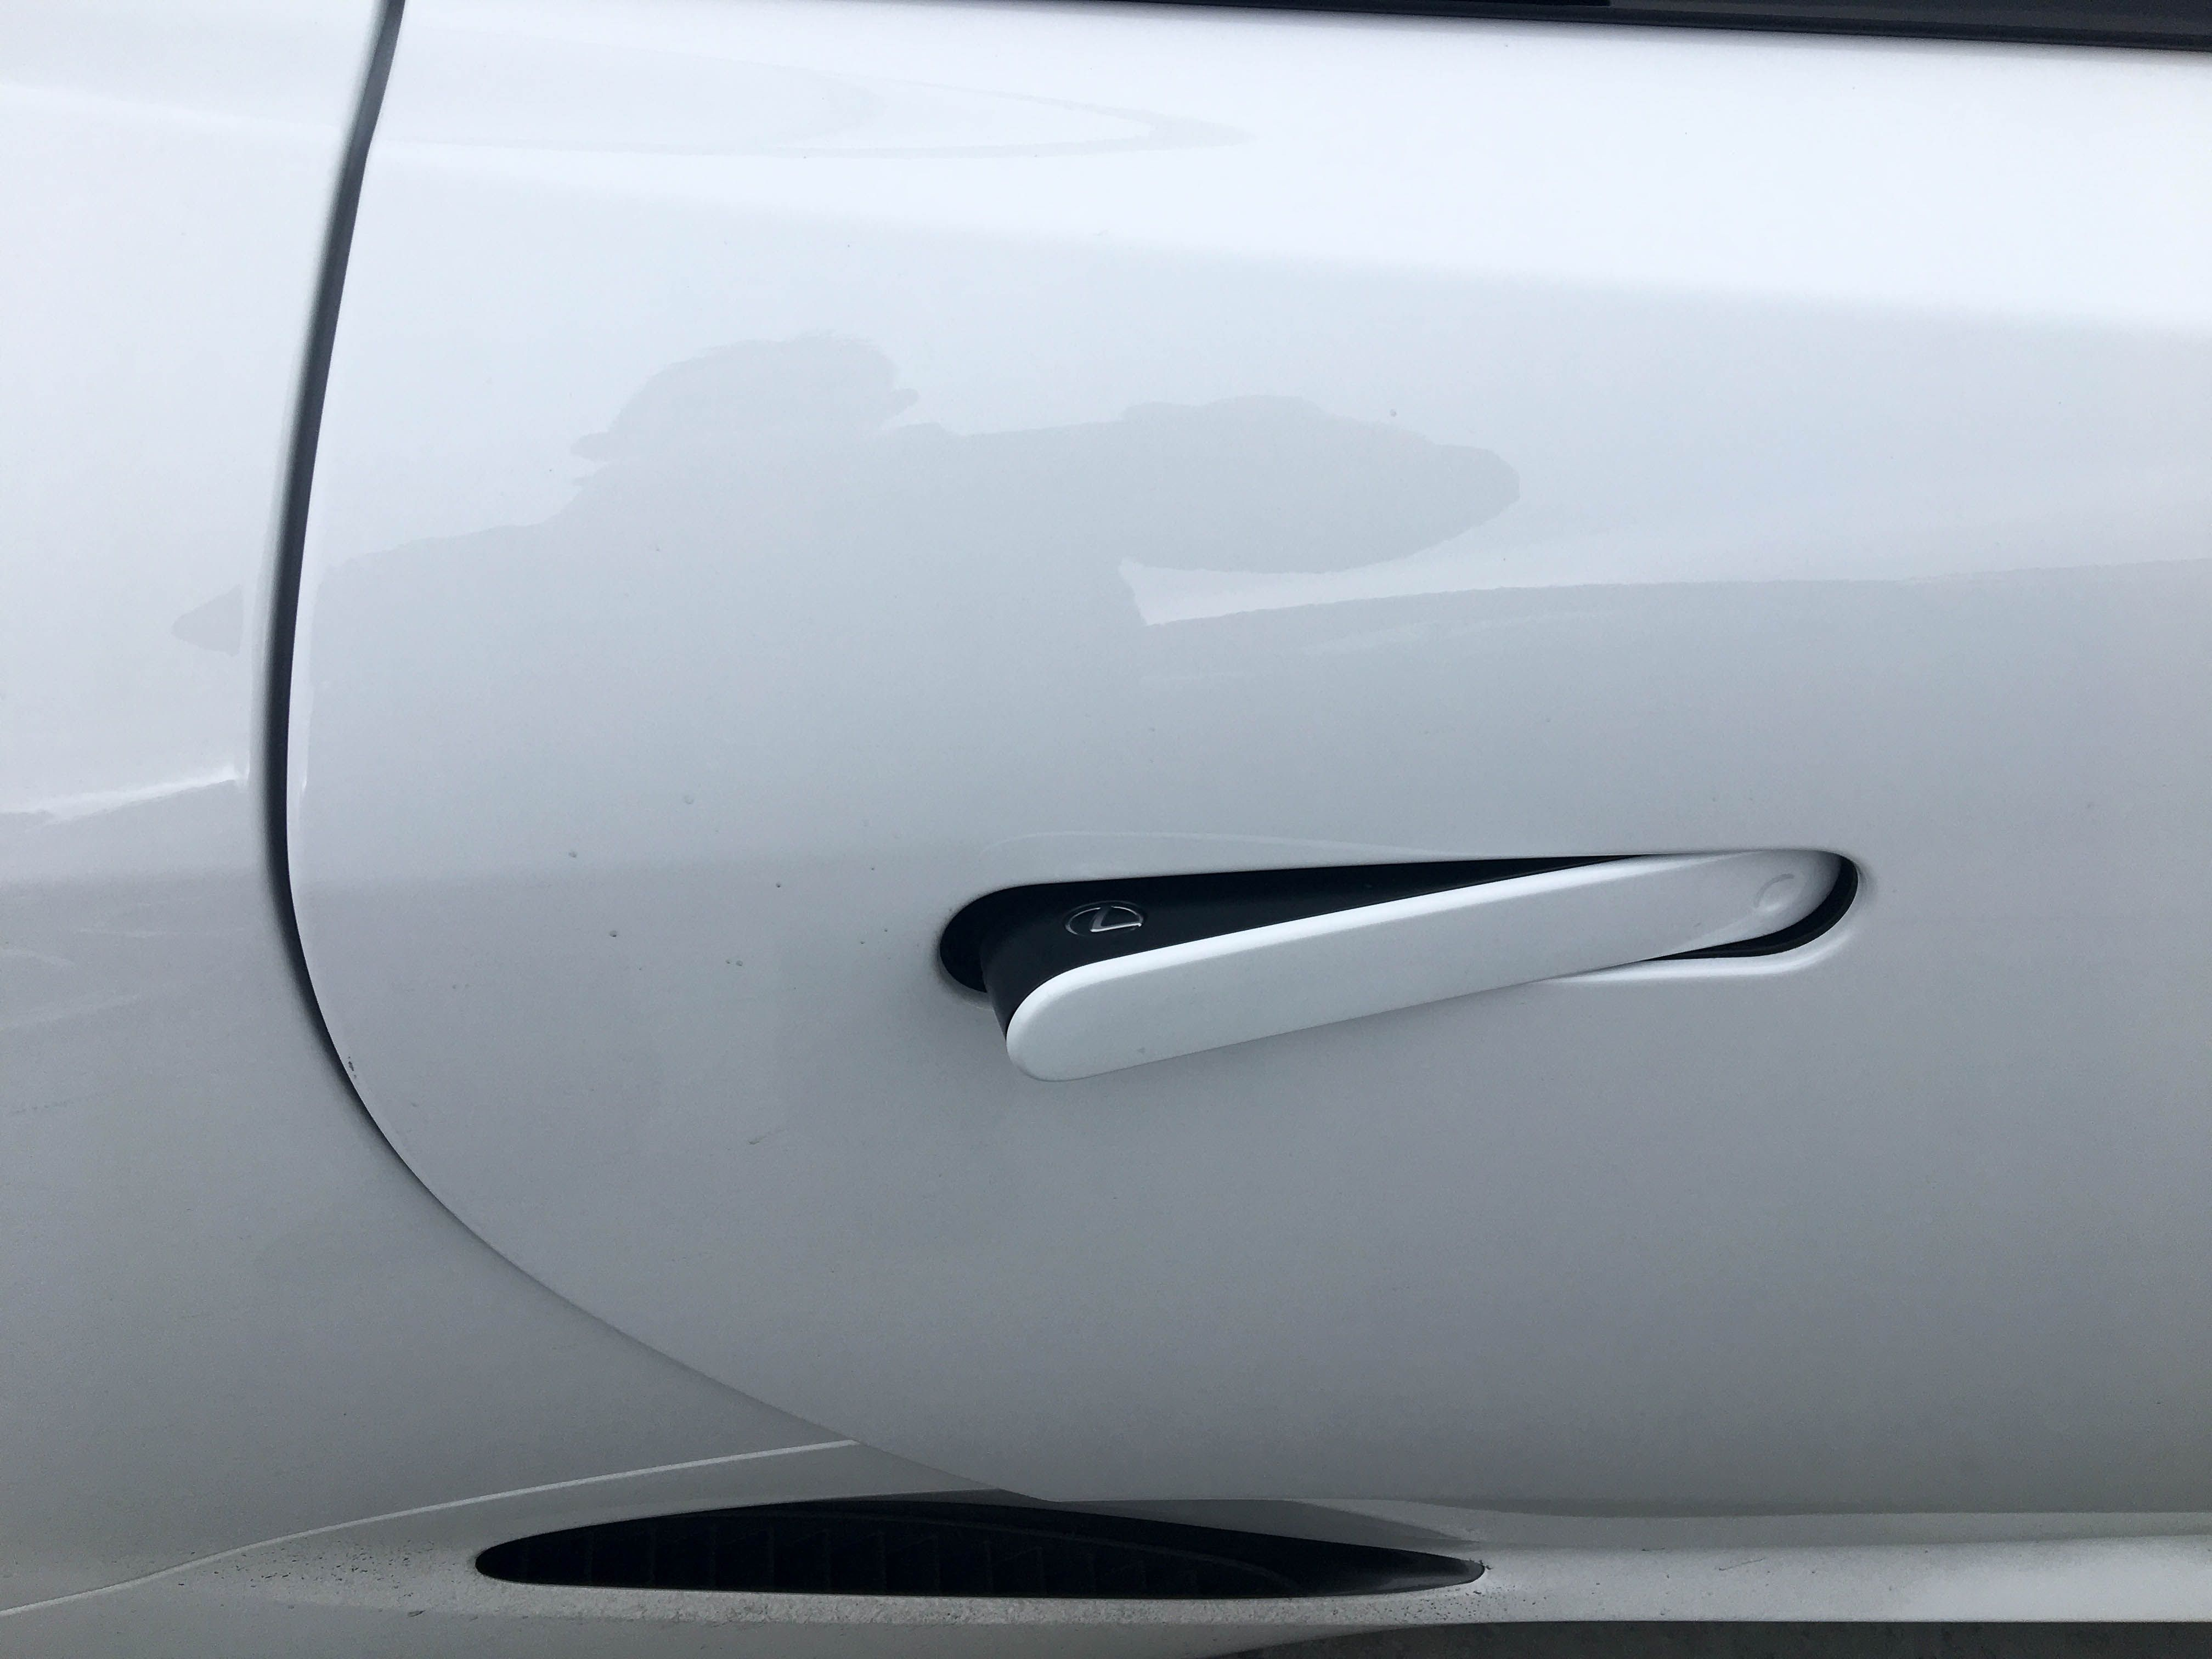 The Detail On The New Lexus Lc 500 Amazes Us Check Out That Lexus Logo Within The Pop Out Door Handle The Sensational New Coupe Fr Lexus Lc Lexus New Lexus